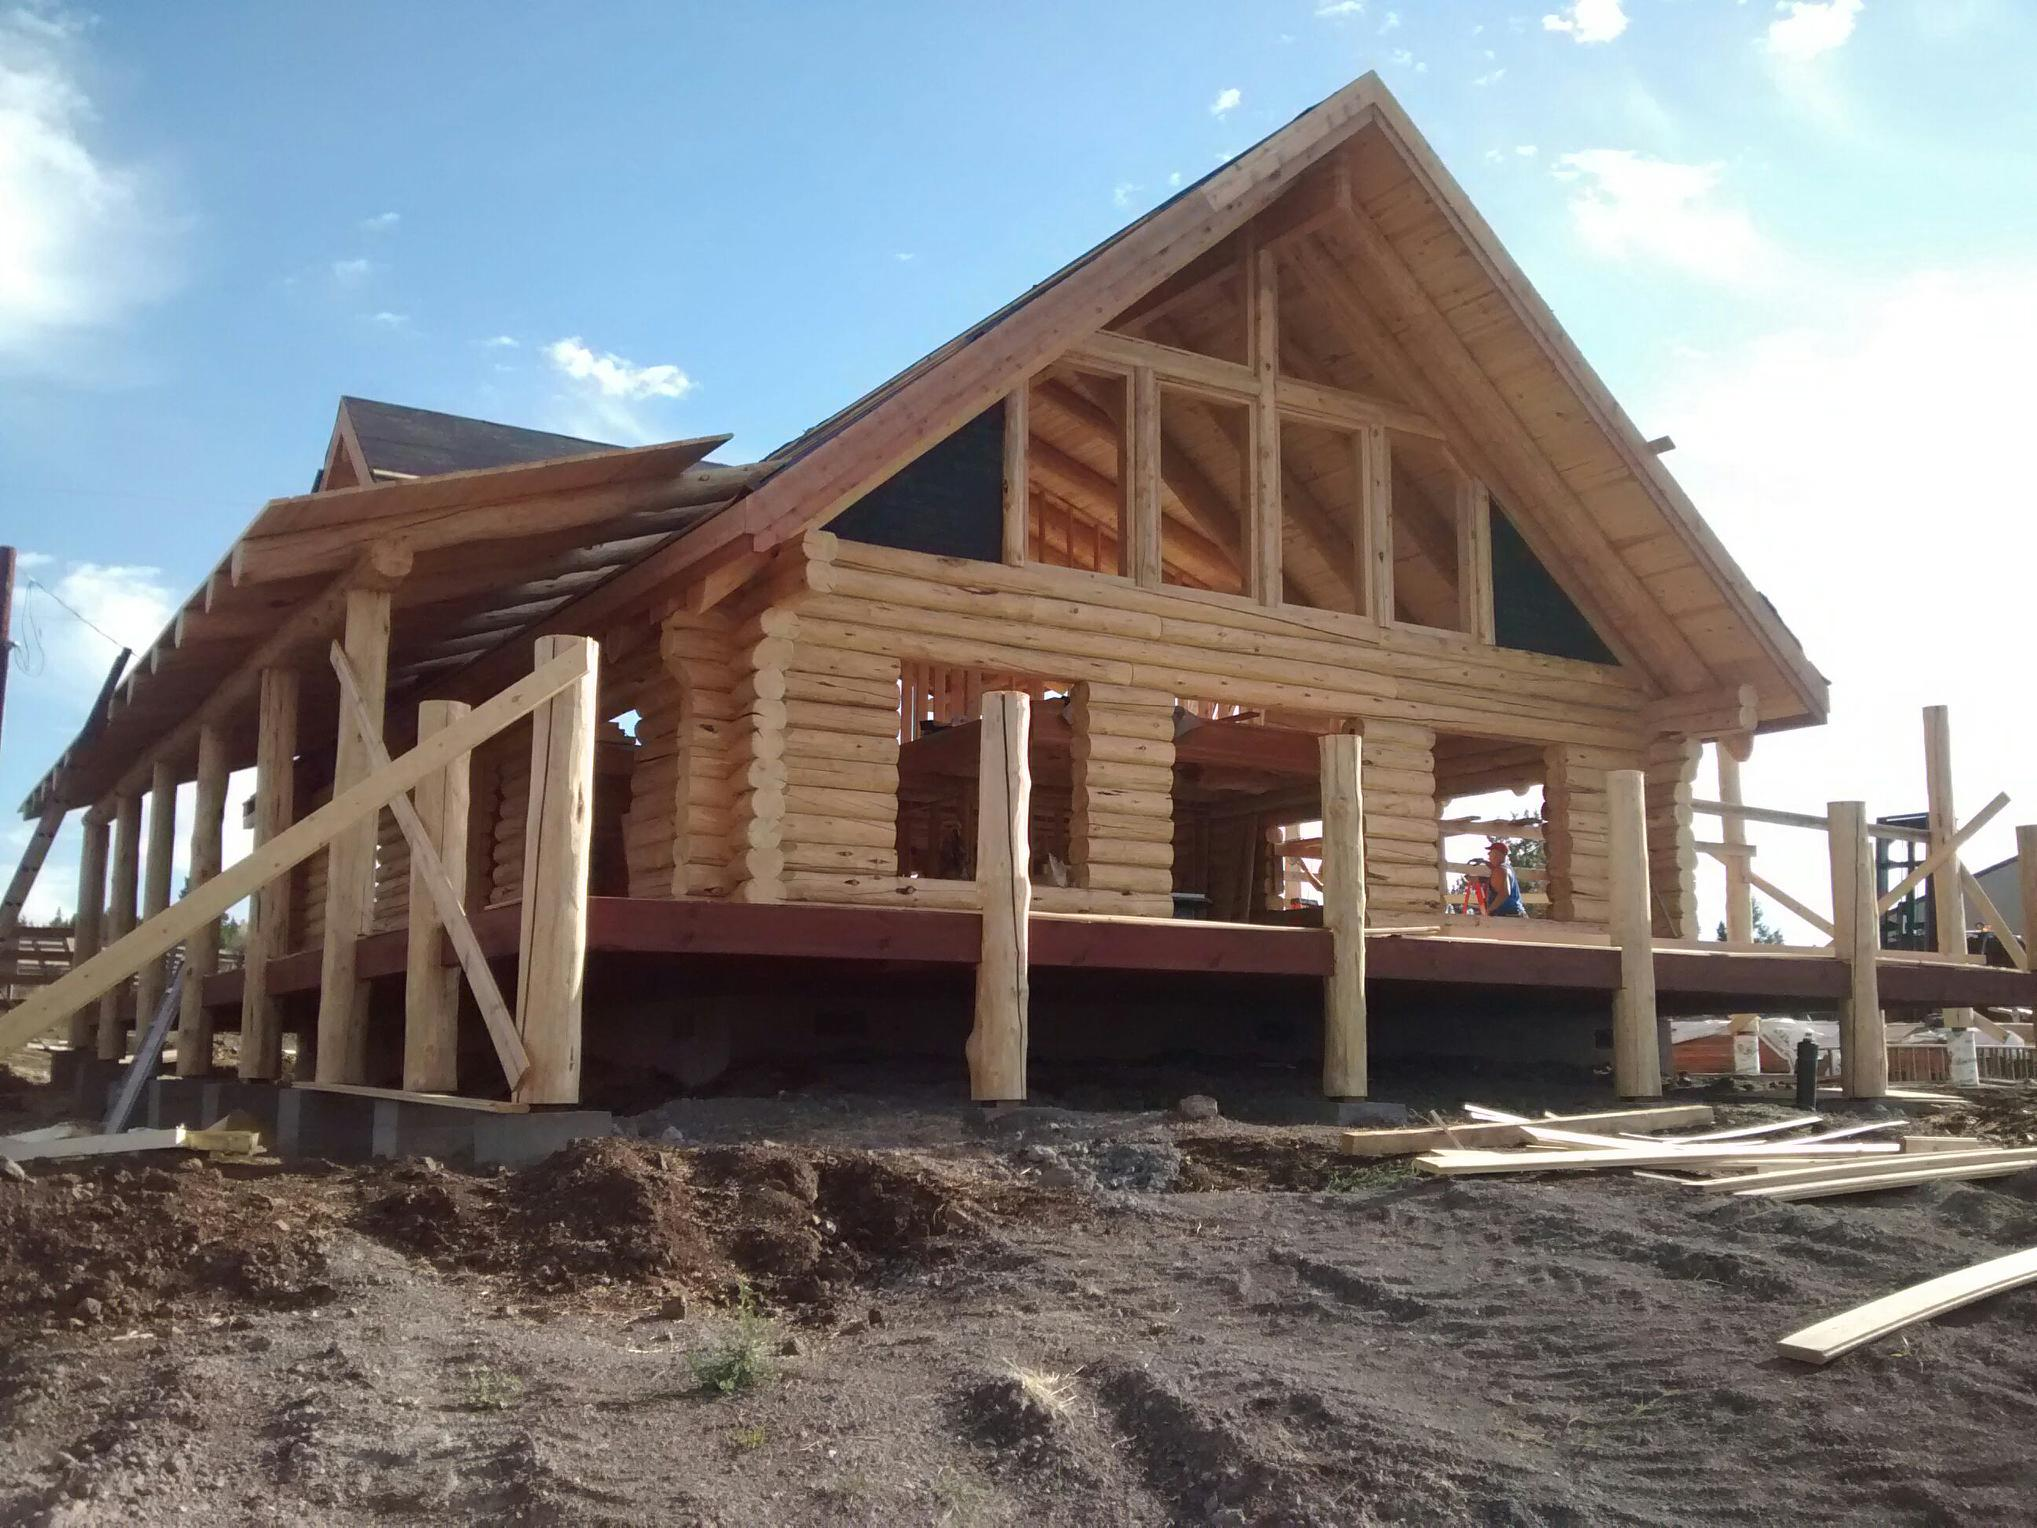 New 2100 sq.ft. log home near beautiful Klamath Falls, OR.